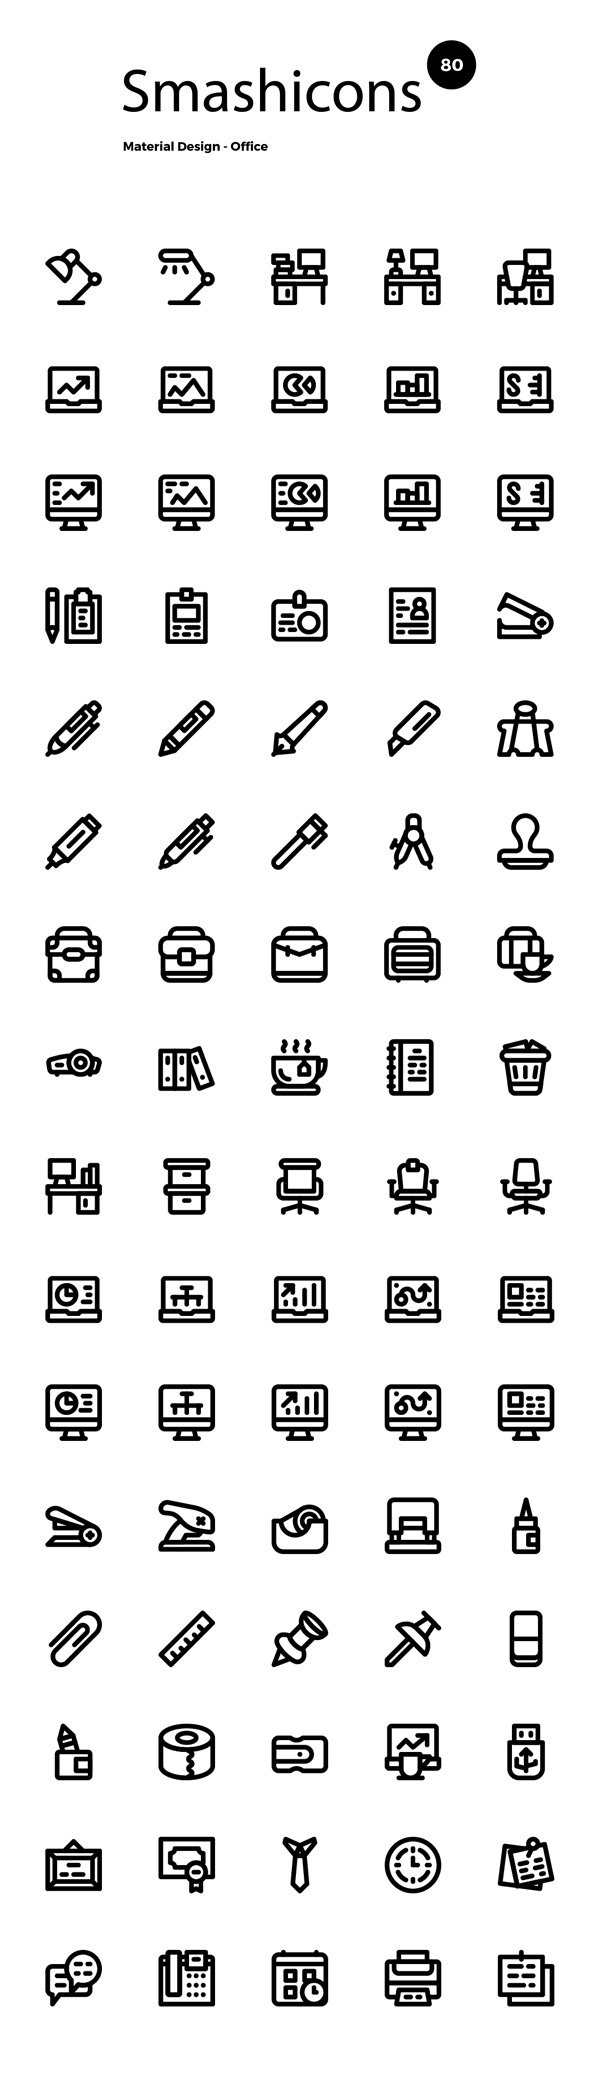 80 Material Office Icons